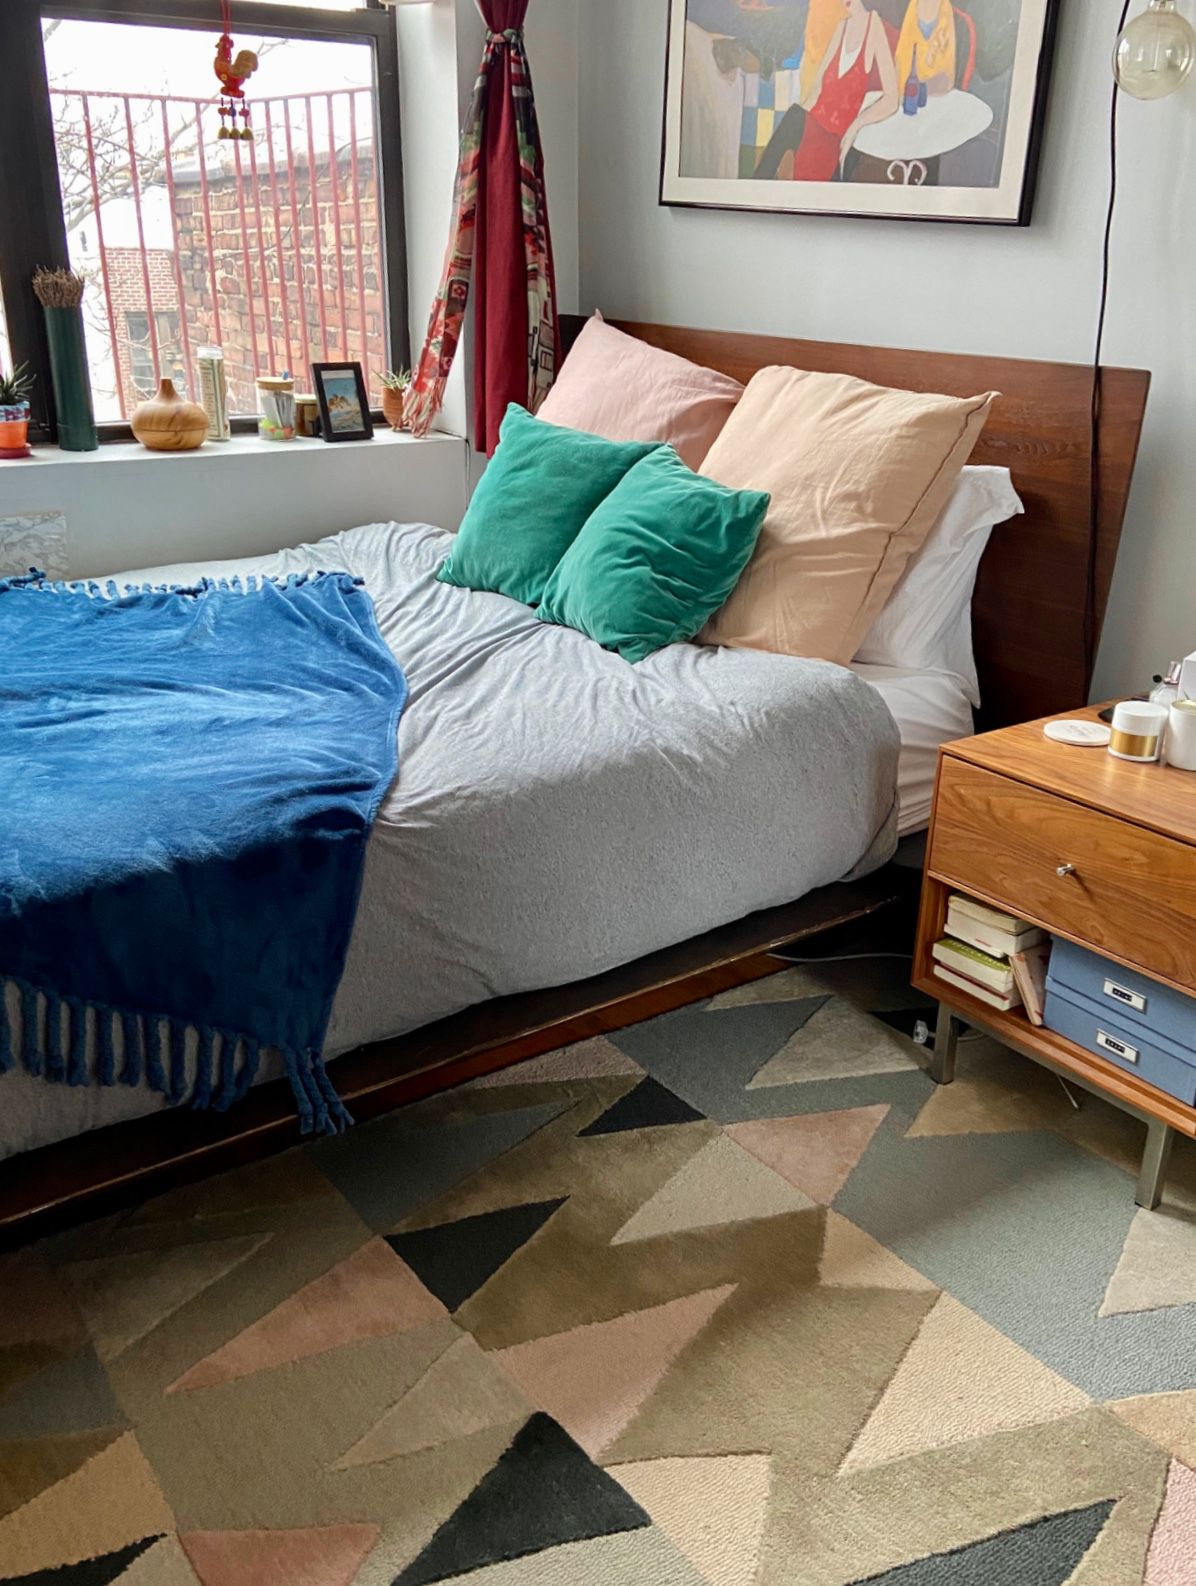 A rug with zig-zag pattern sits next to a wooden platform bed.